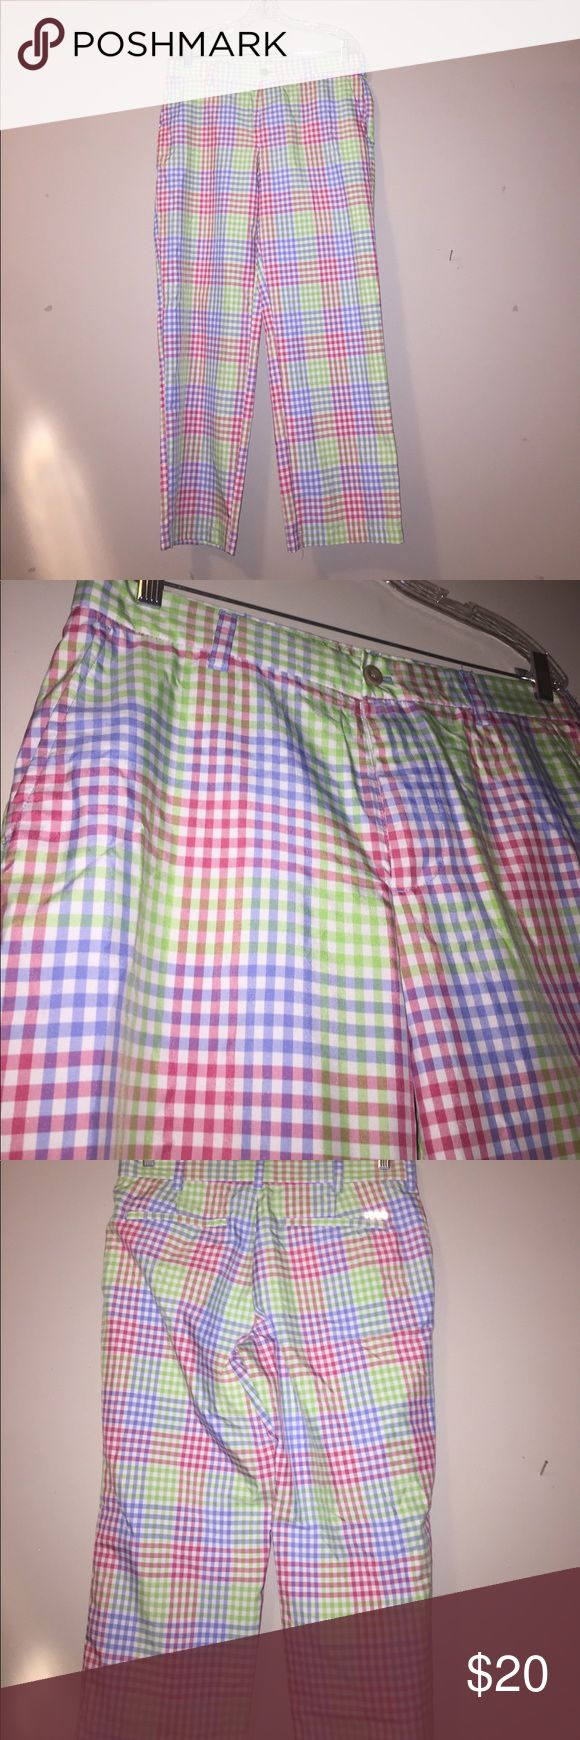 Izod Golf Pants 33x30 I know Easter just passed... but these bright colored Izod pants will give you a flashy edge out on the course. Colors are white pink green blue Izod Pants Dress